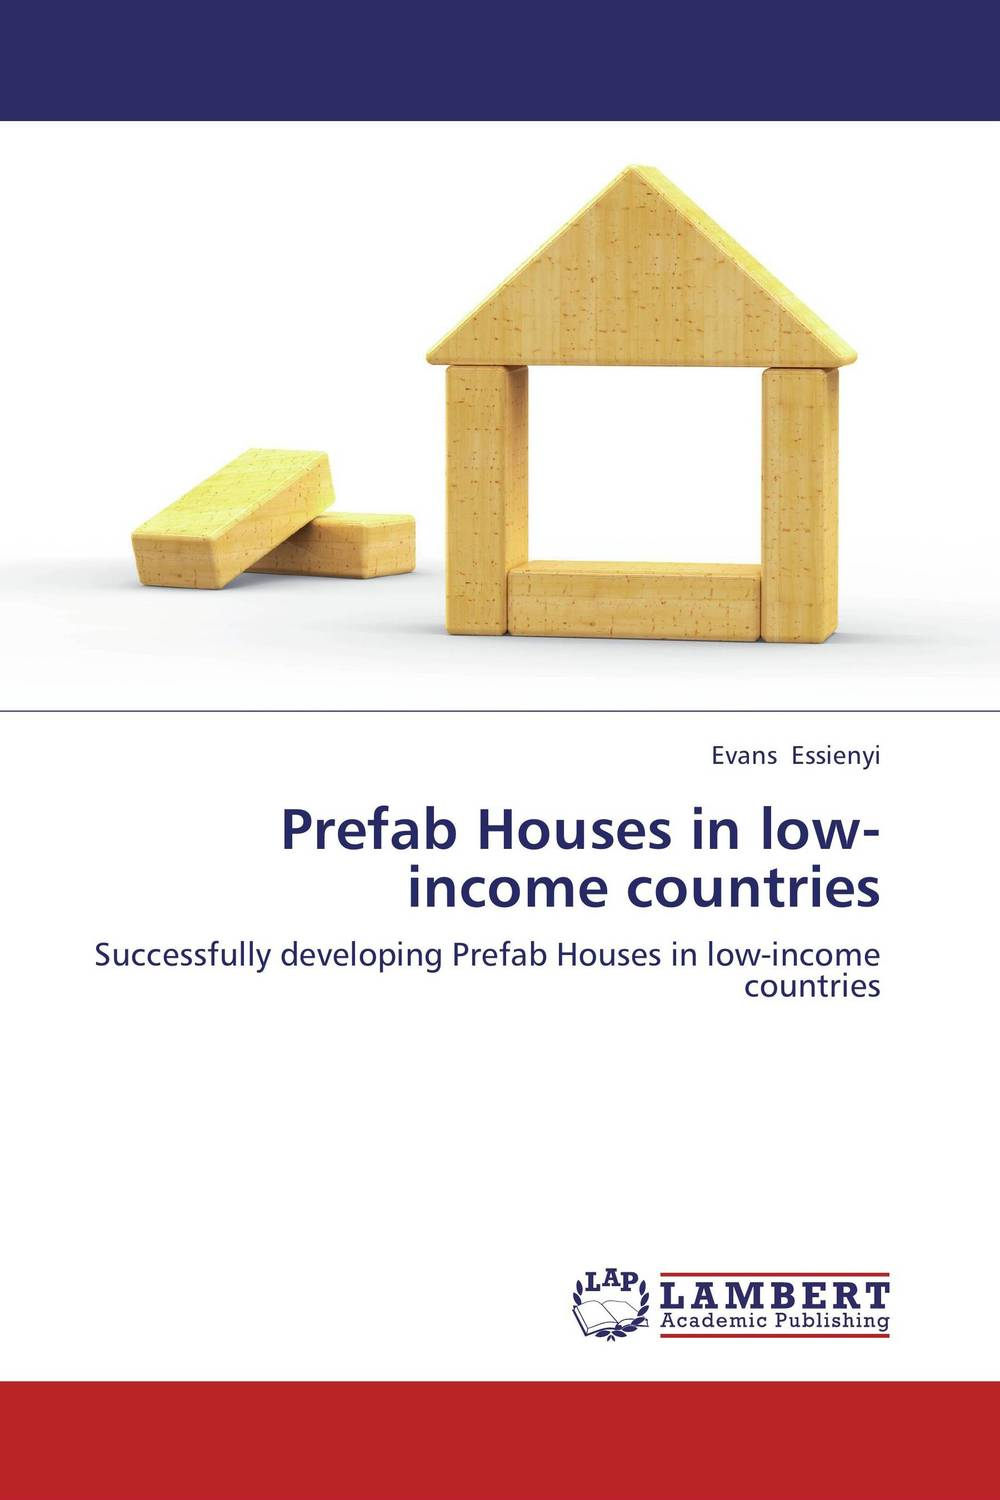 Prefab Houses in low-income countries social housing in glasgow volume 2